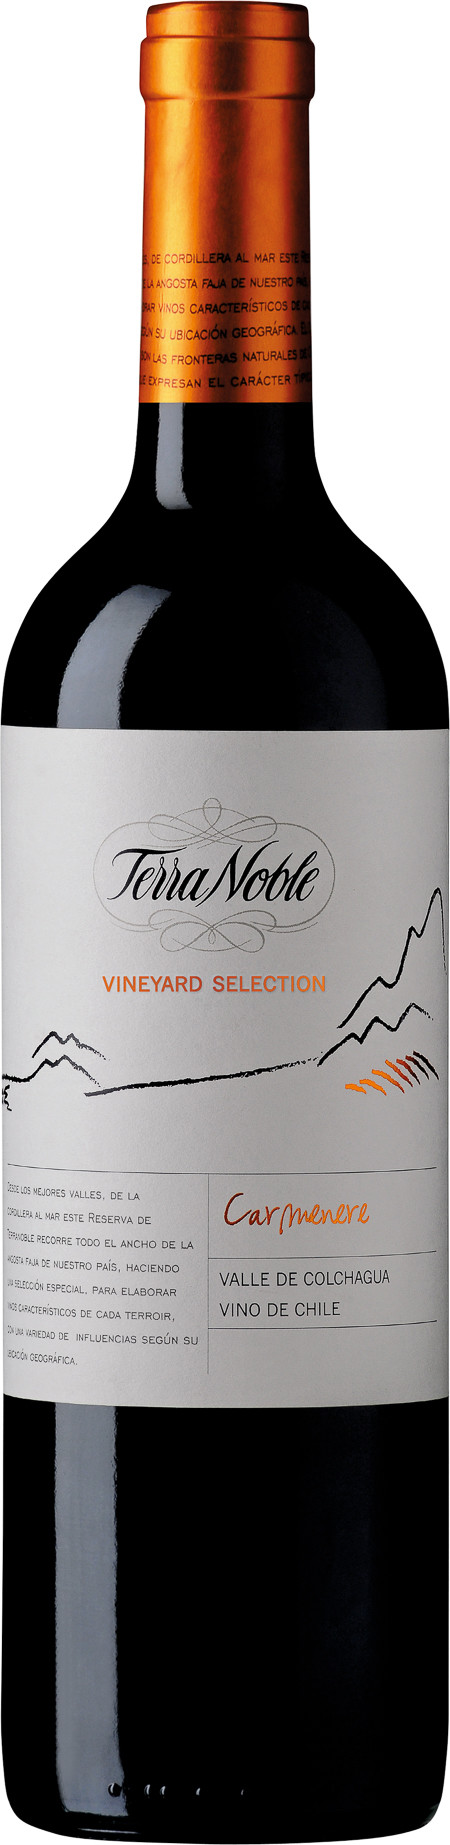 Terra Noble- Vineyard Selection Carmenere